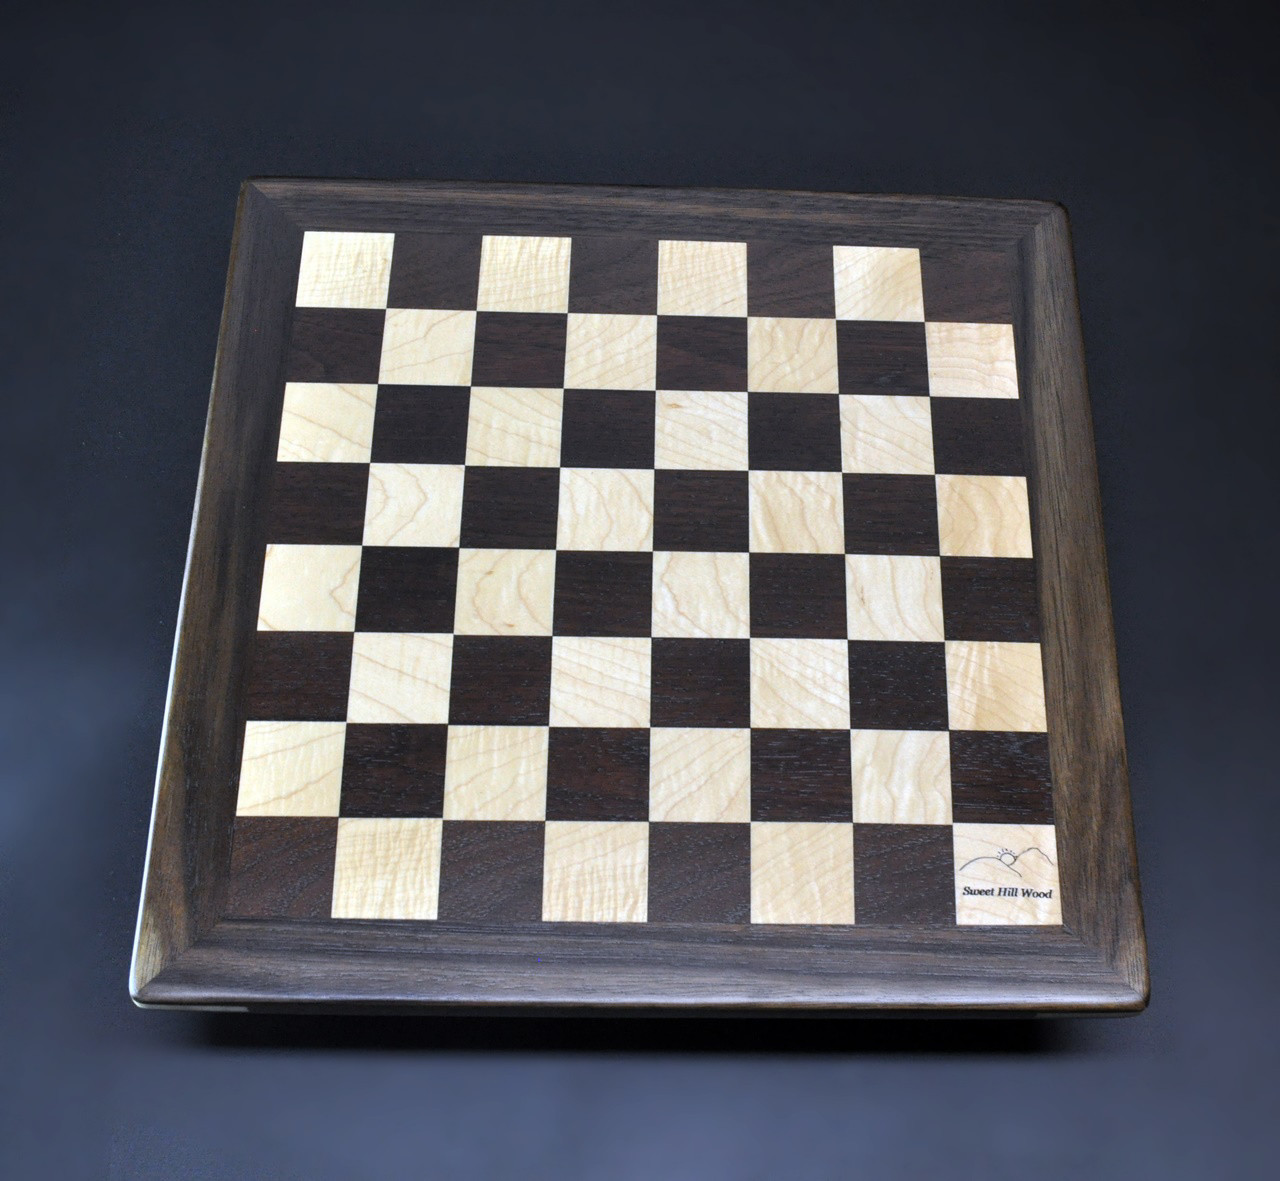 peruvian walnut and curly maple chess board 14 inch image 2